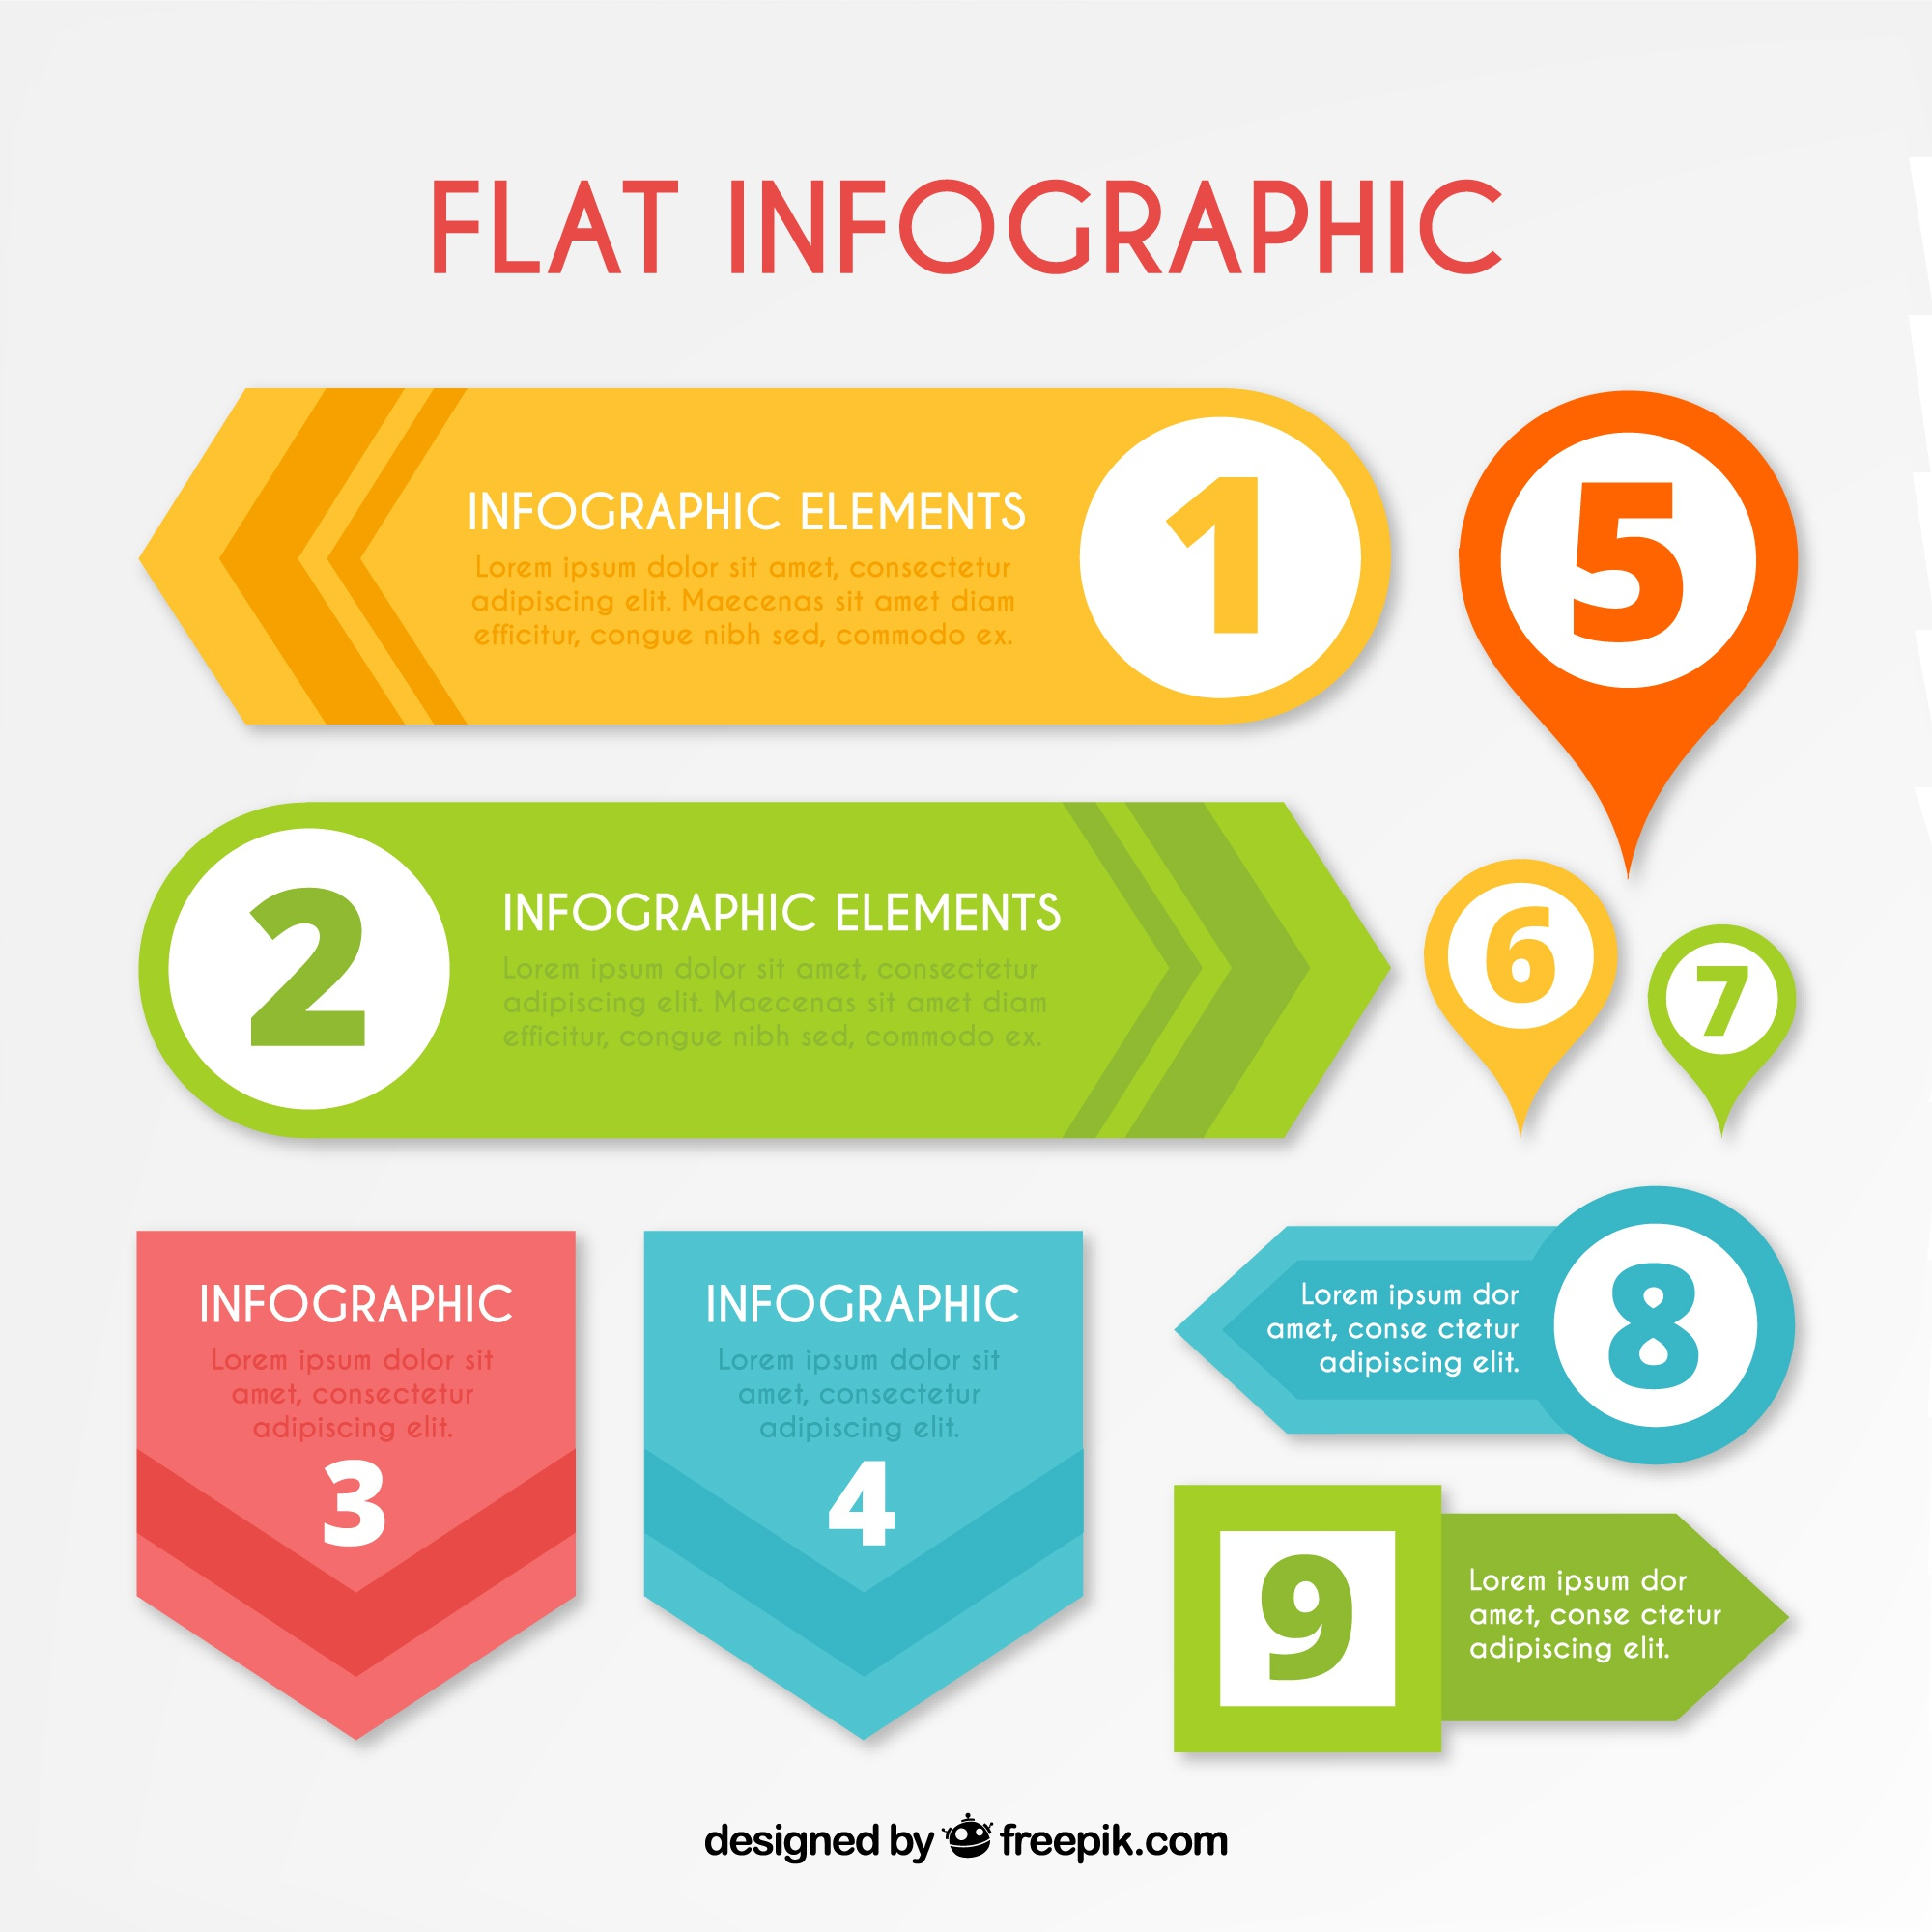 Flat infographic with nine elements